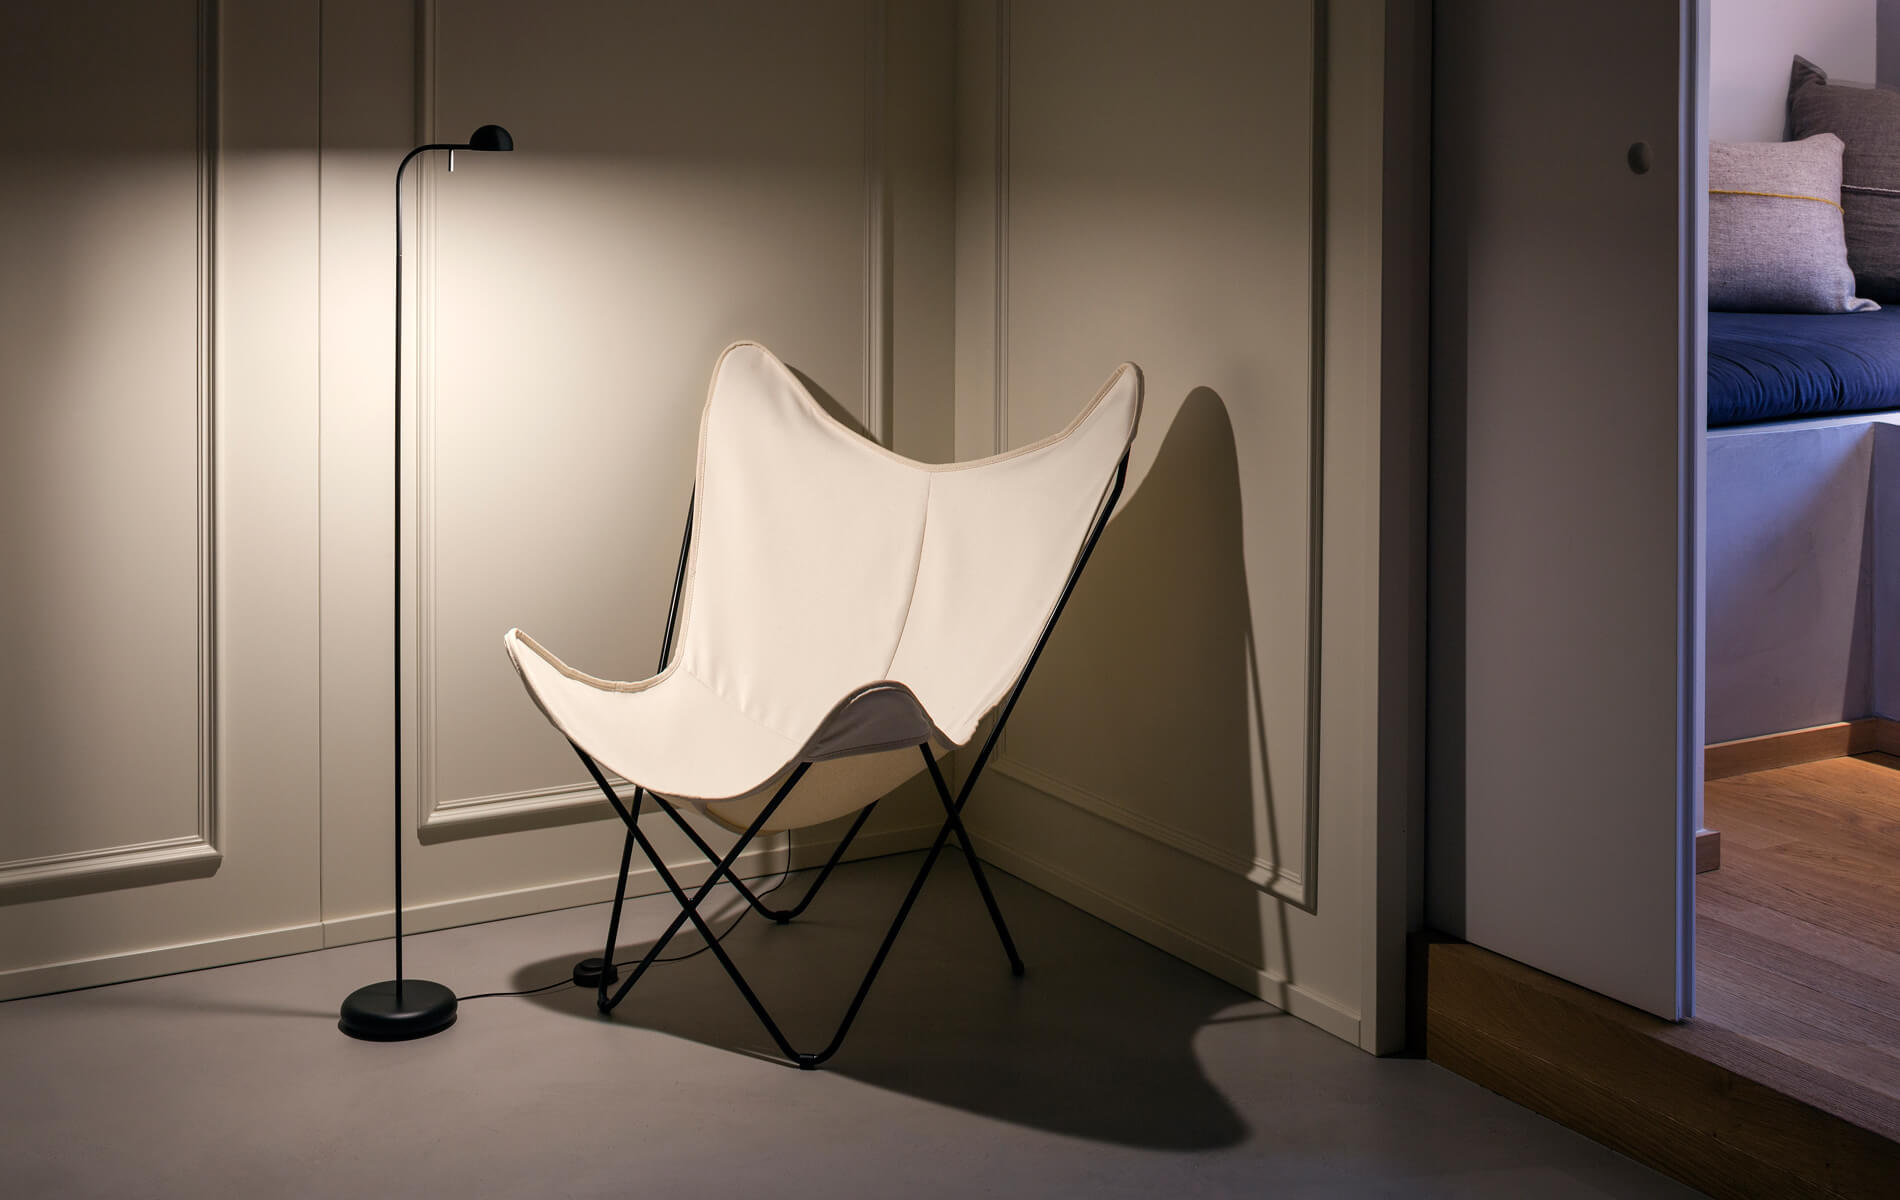 More information of Vibia PIN floor lamp